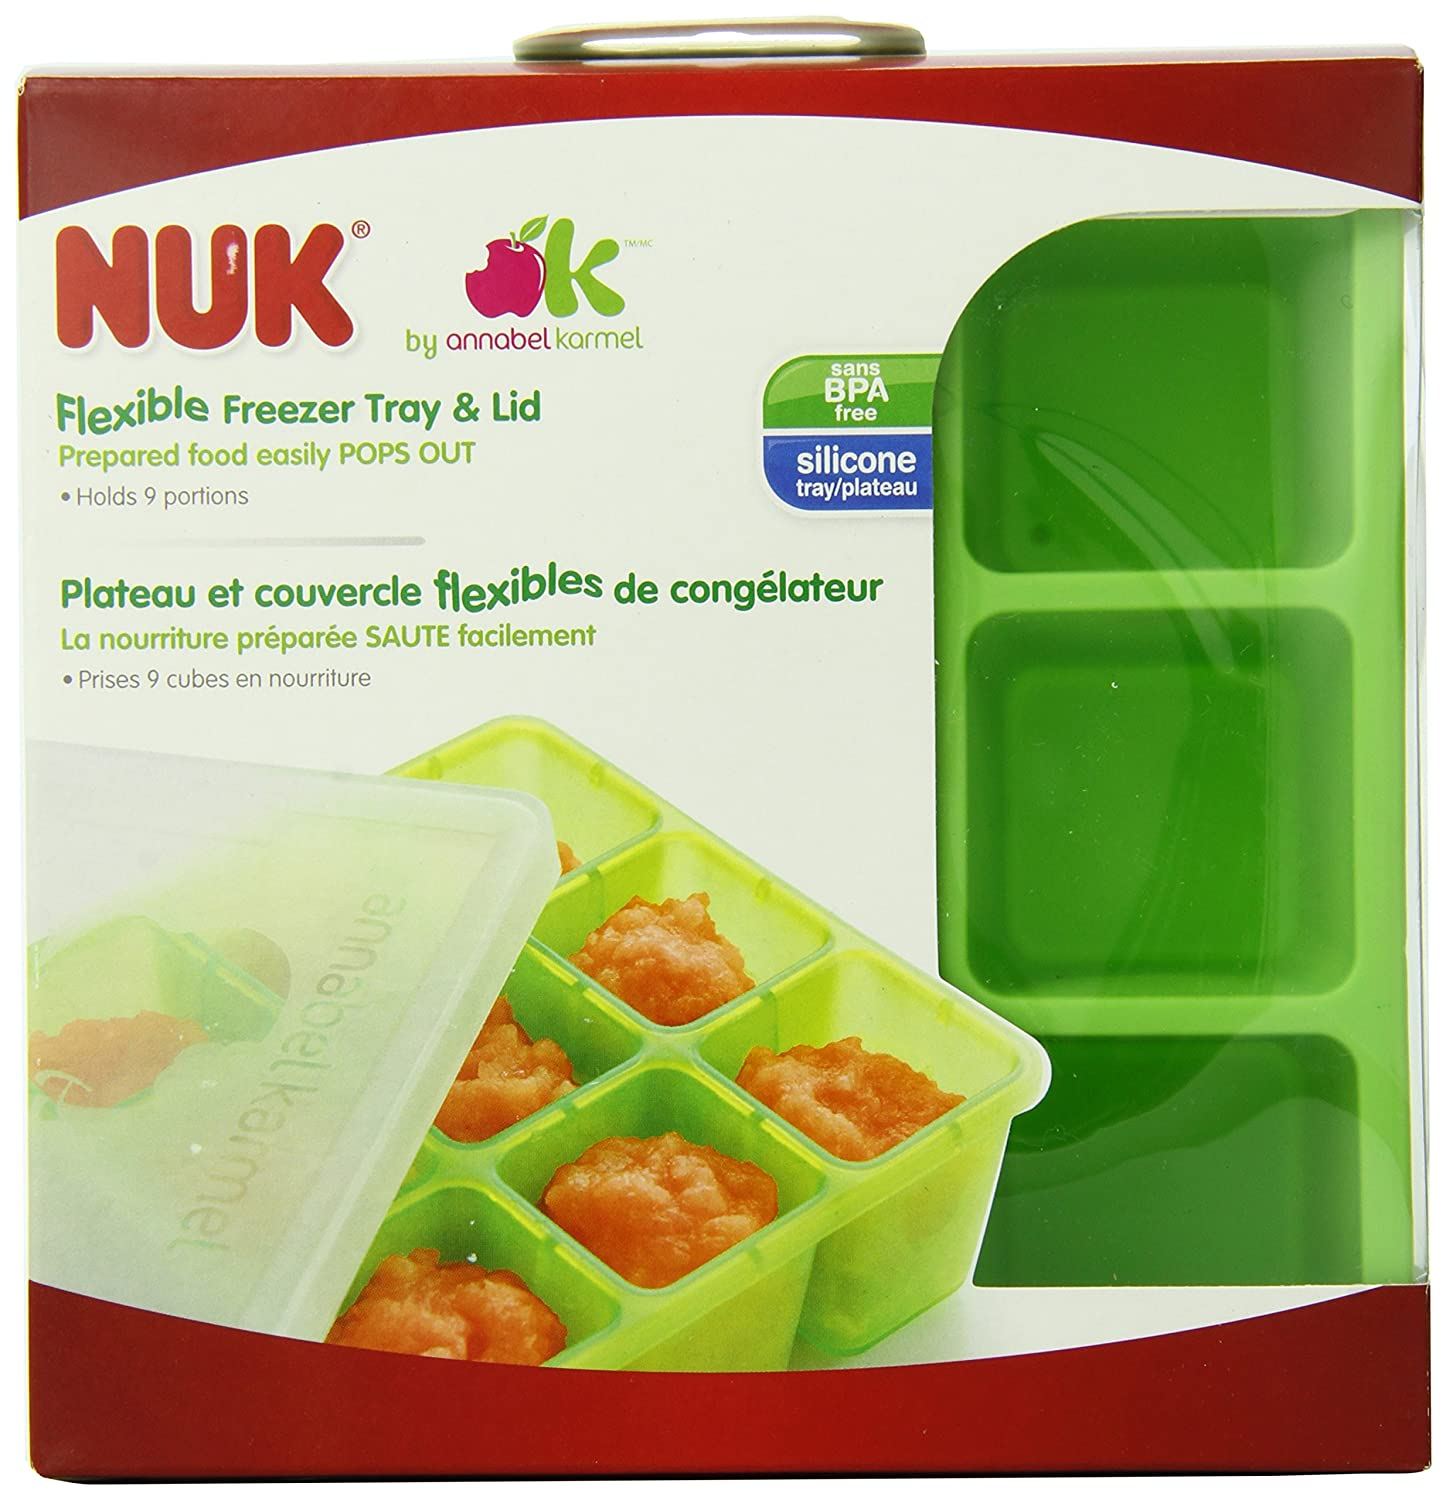 NUK Homemade Baby Food Flexible Freezer Tray and Lid Set 78961